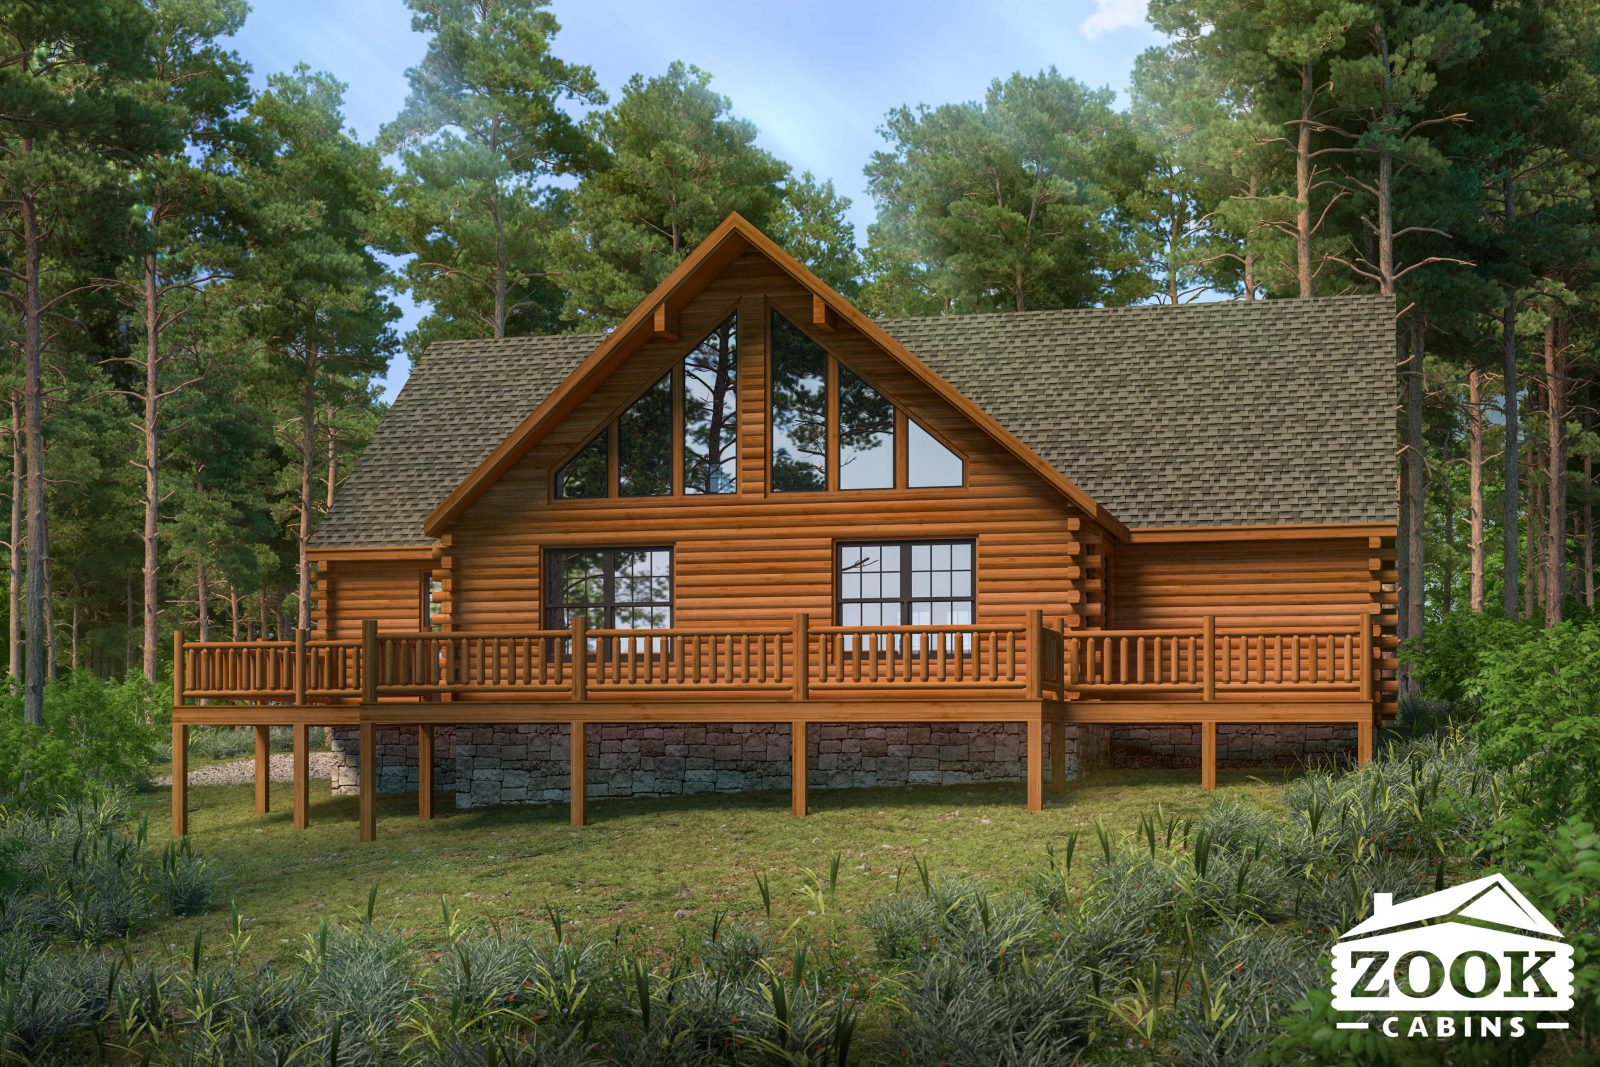 Lodge Cabins in New Mexico